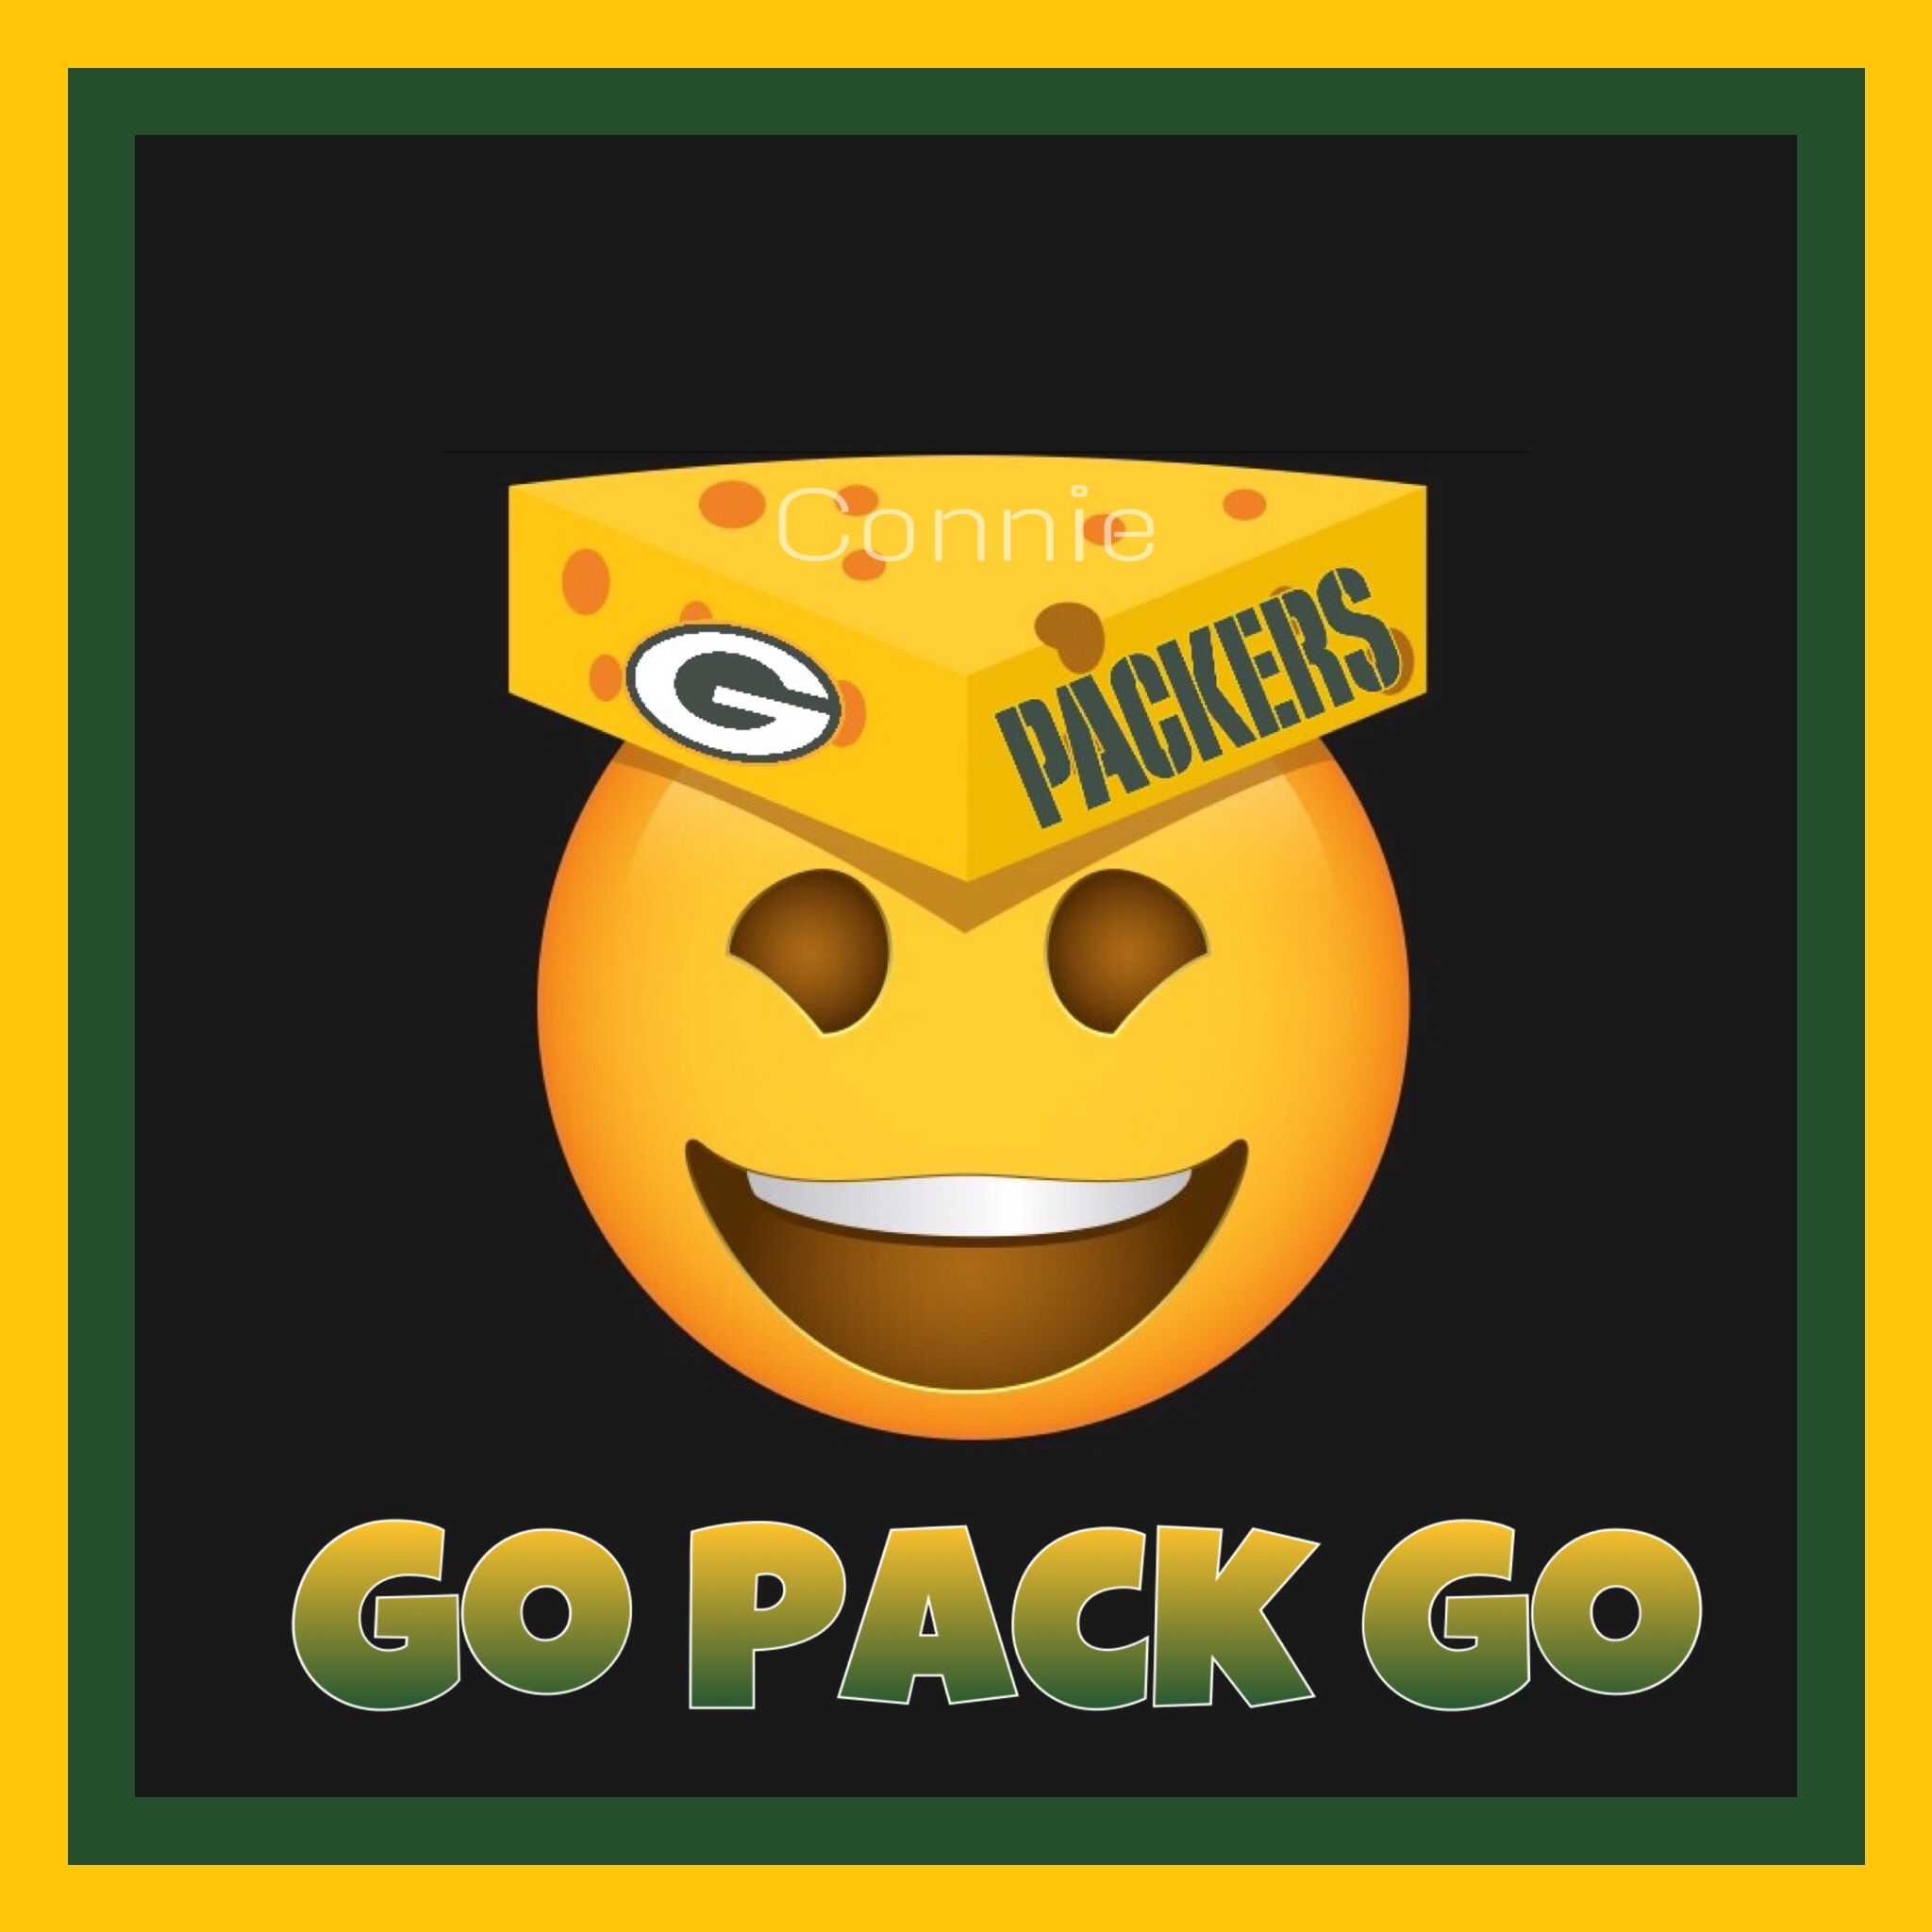 Pin By Barbie Simmons On Packers Go Packers Green Bay Packers Packers Fan